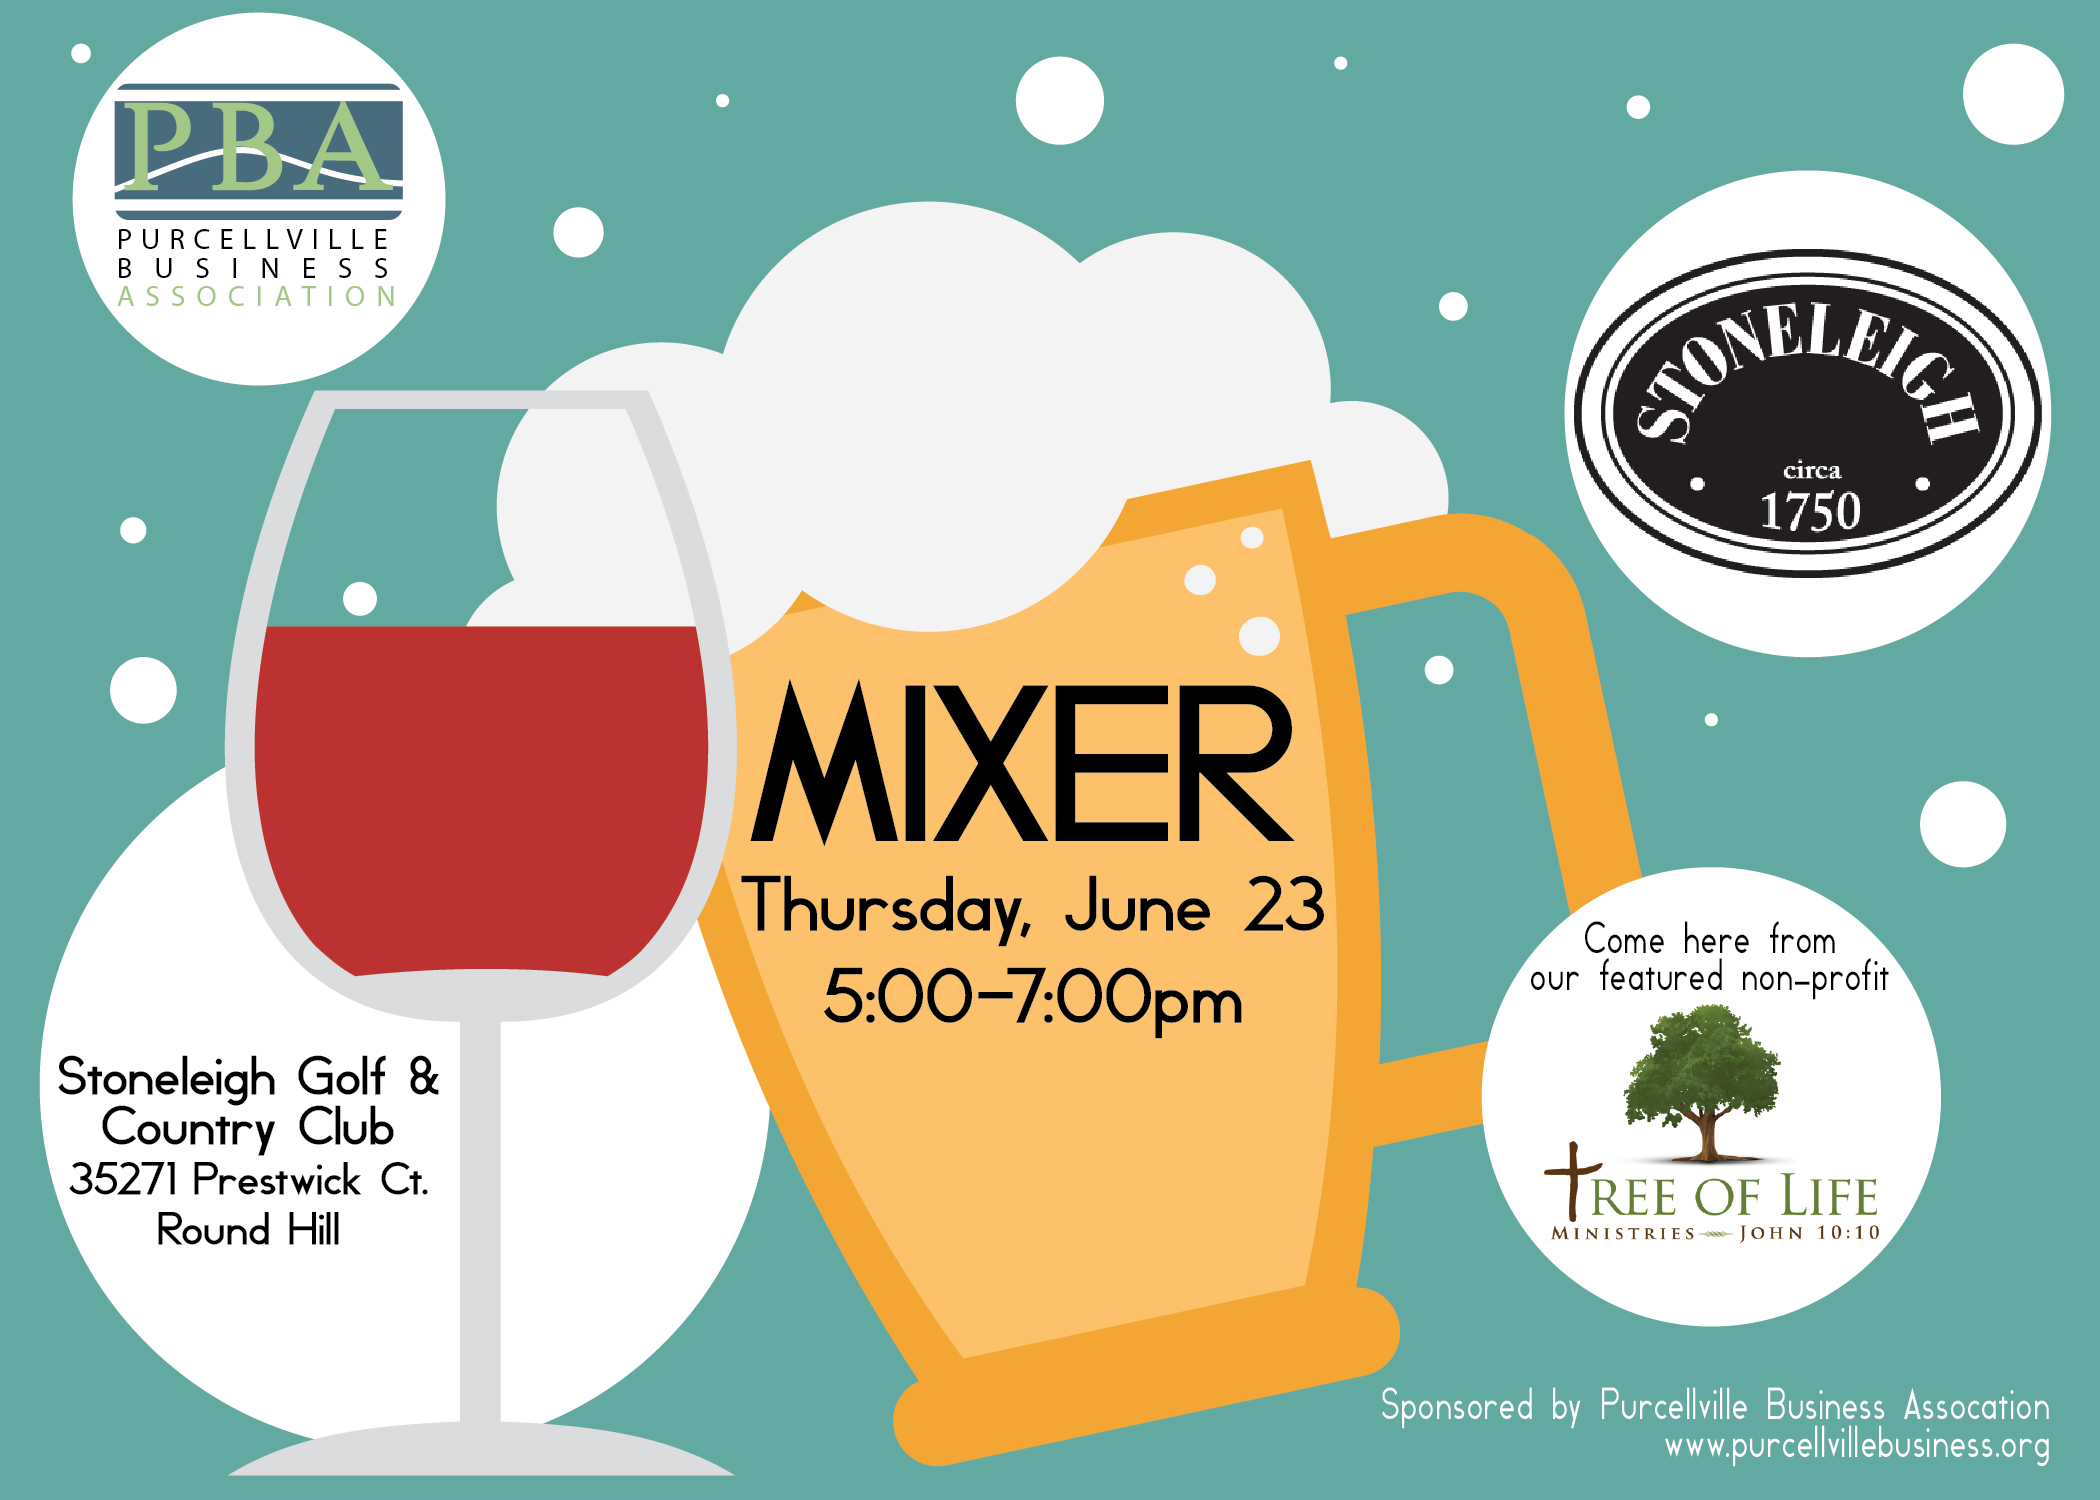 PBA_Mixer-June23-01